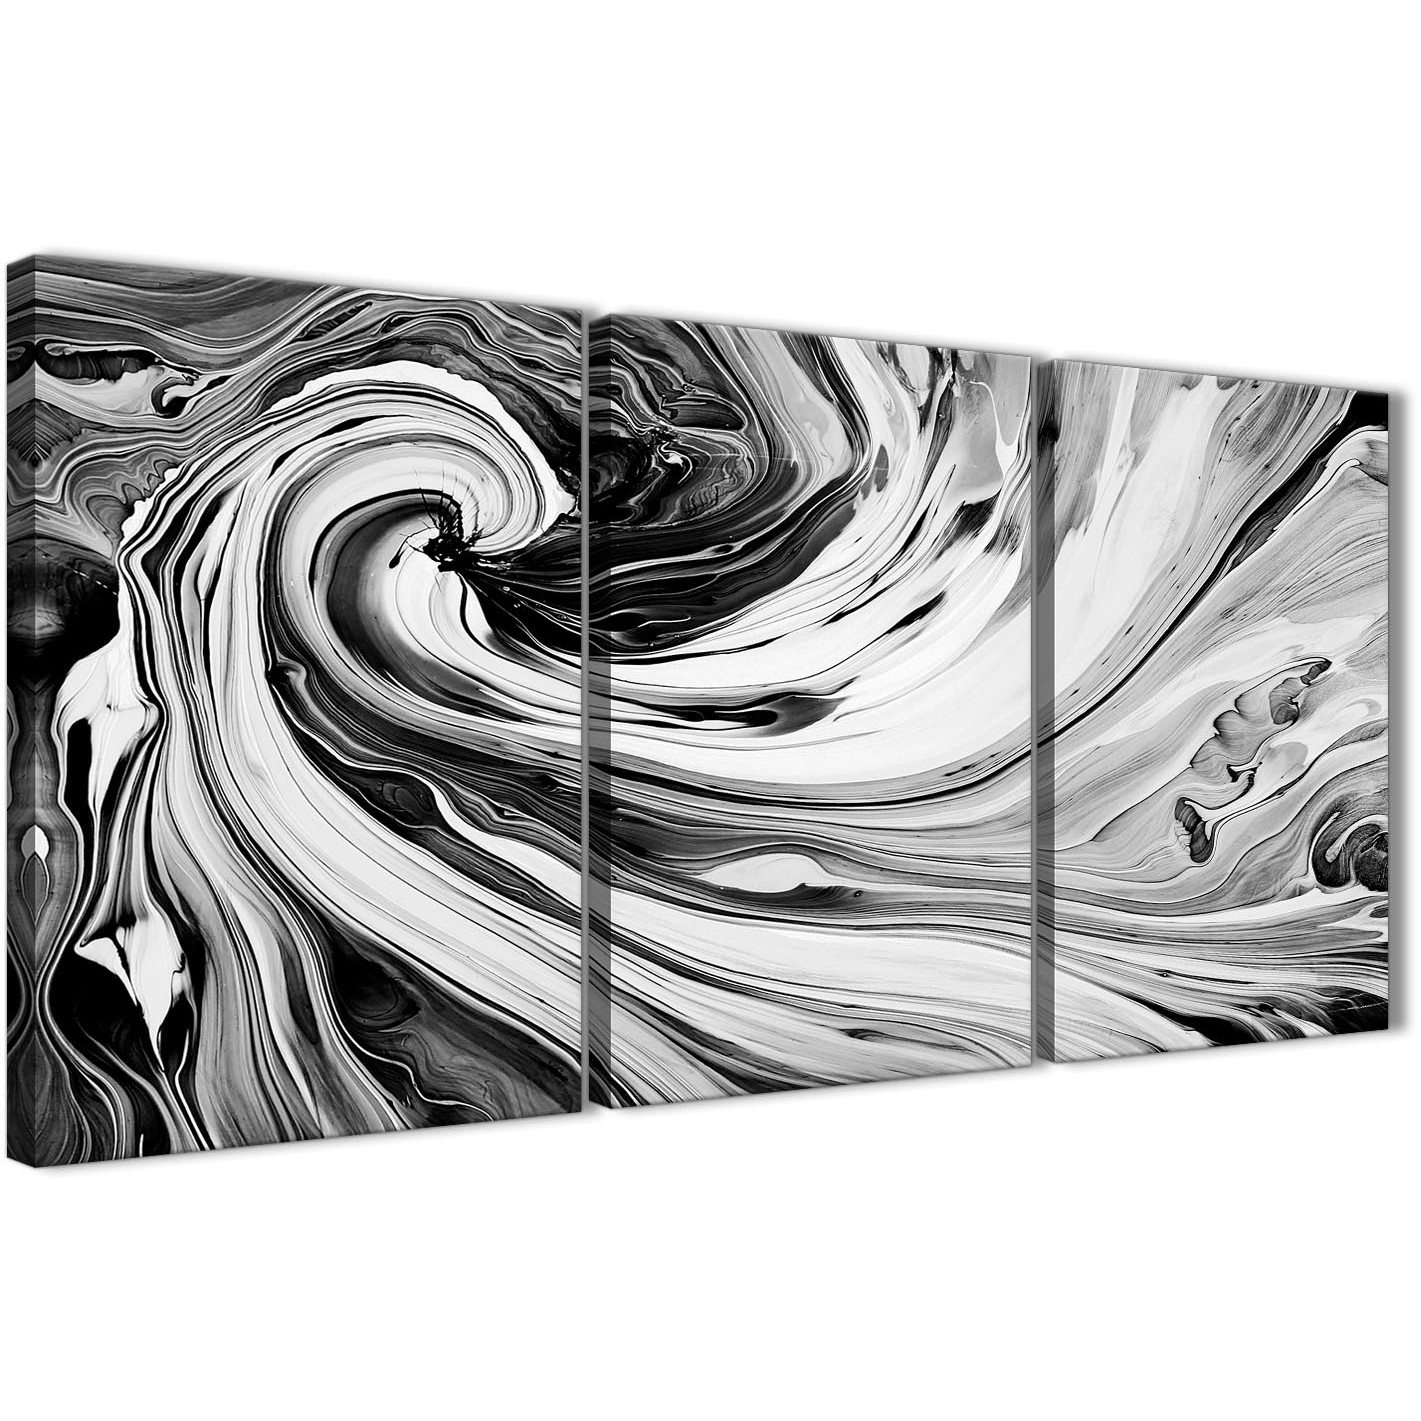 Black White Grey Swirls Modern Abstract Canvas Wall Art – Split 3 For Best And Newest Grey Abstract Canvas Wall Art (View 18 of 20)